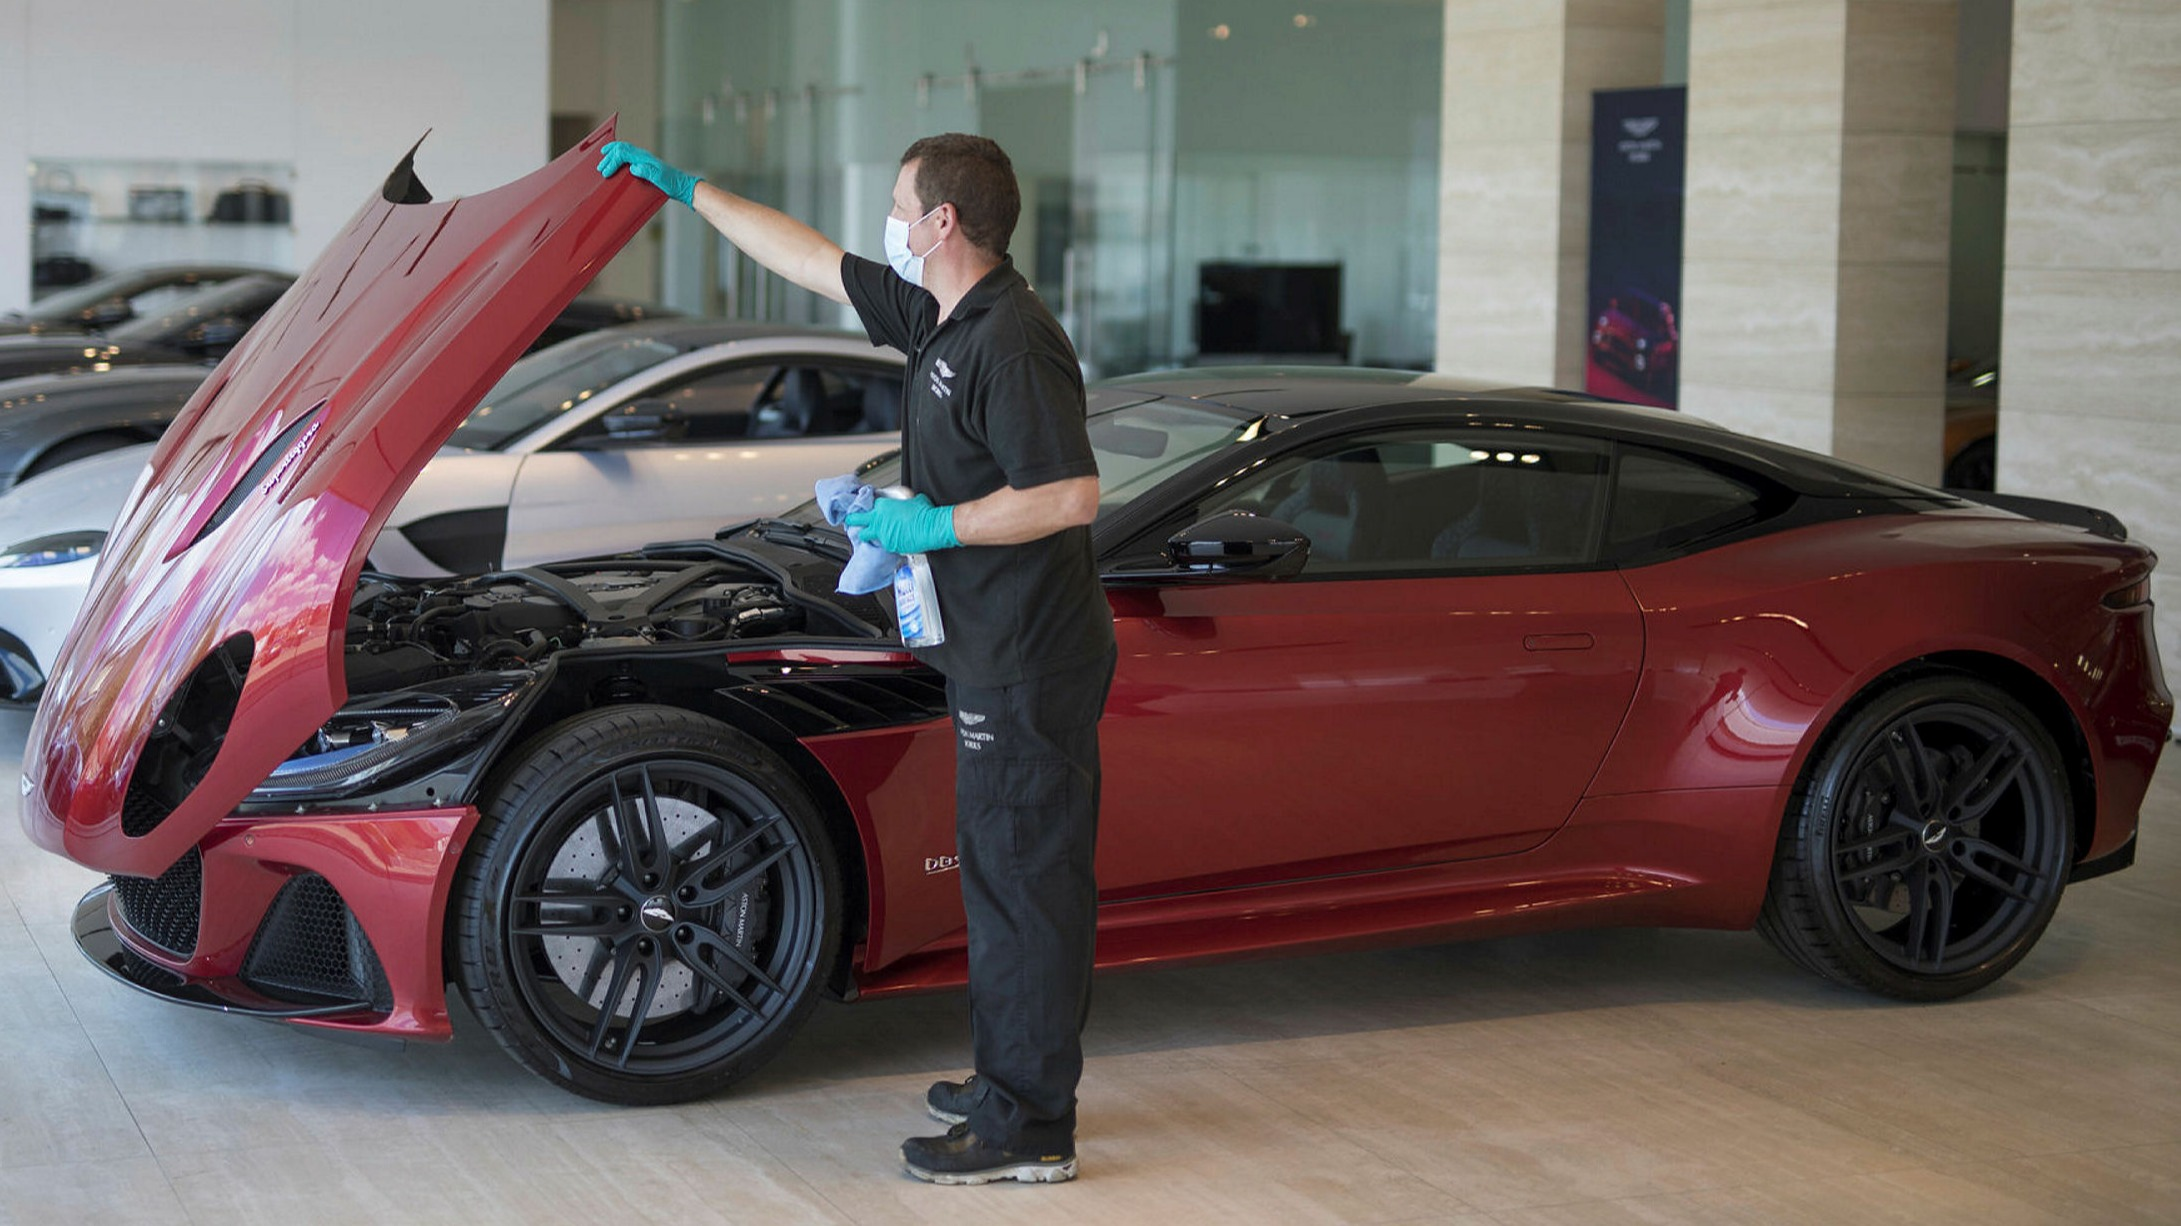 Aston Martin And Lookers Cut Thousands Of Jobs As Uk Car Sales Slump Financial Times